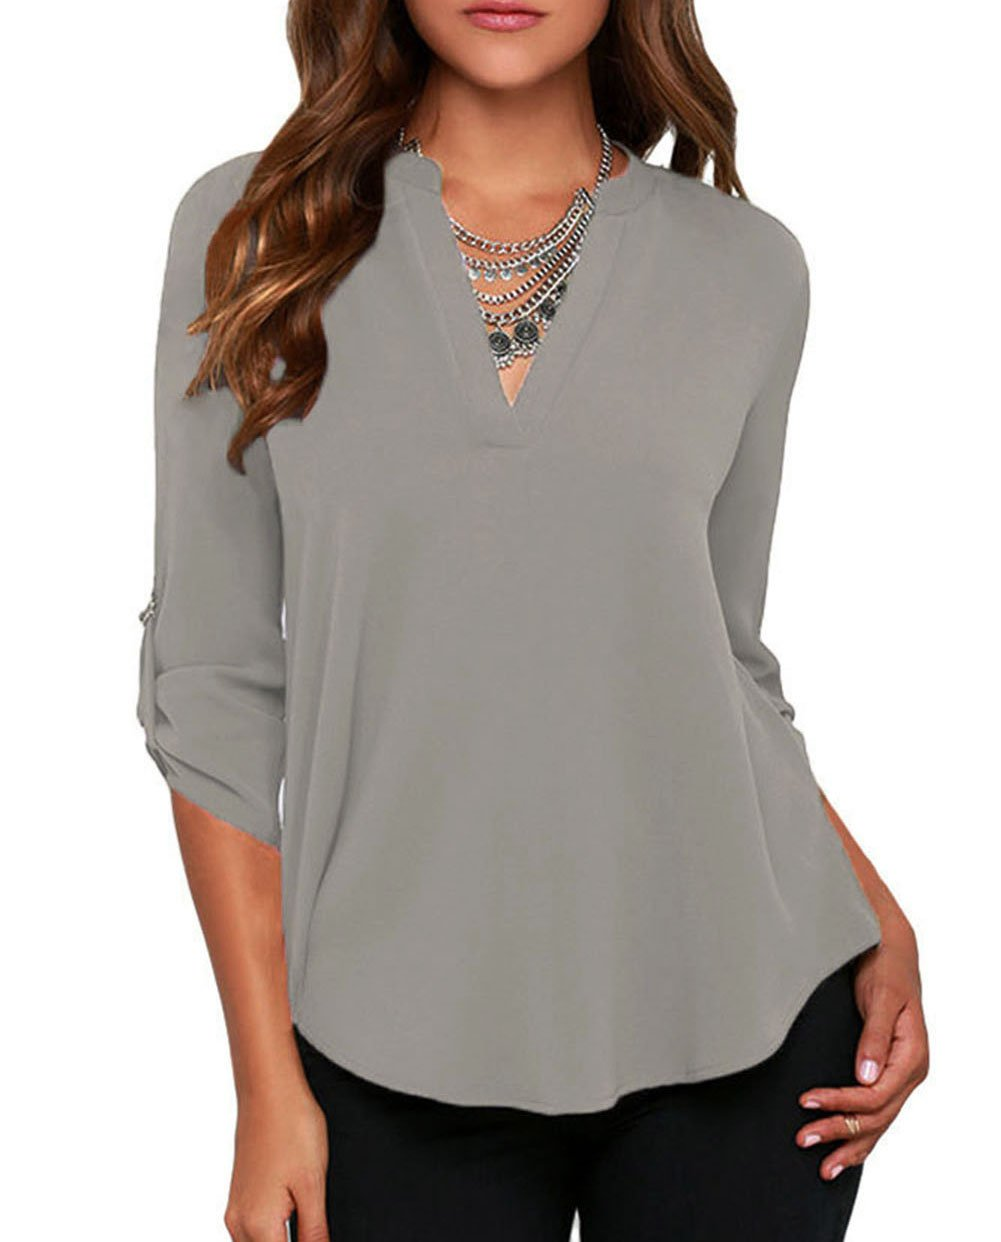 LOSRLY Women's 3/4 Long Sleeve T-Shirts Casual Work Blouse Office Top 8/10 Medium Grey